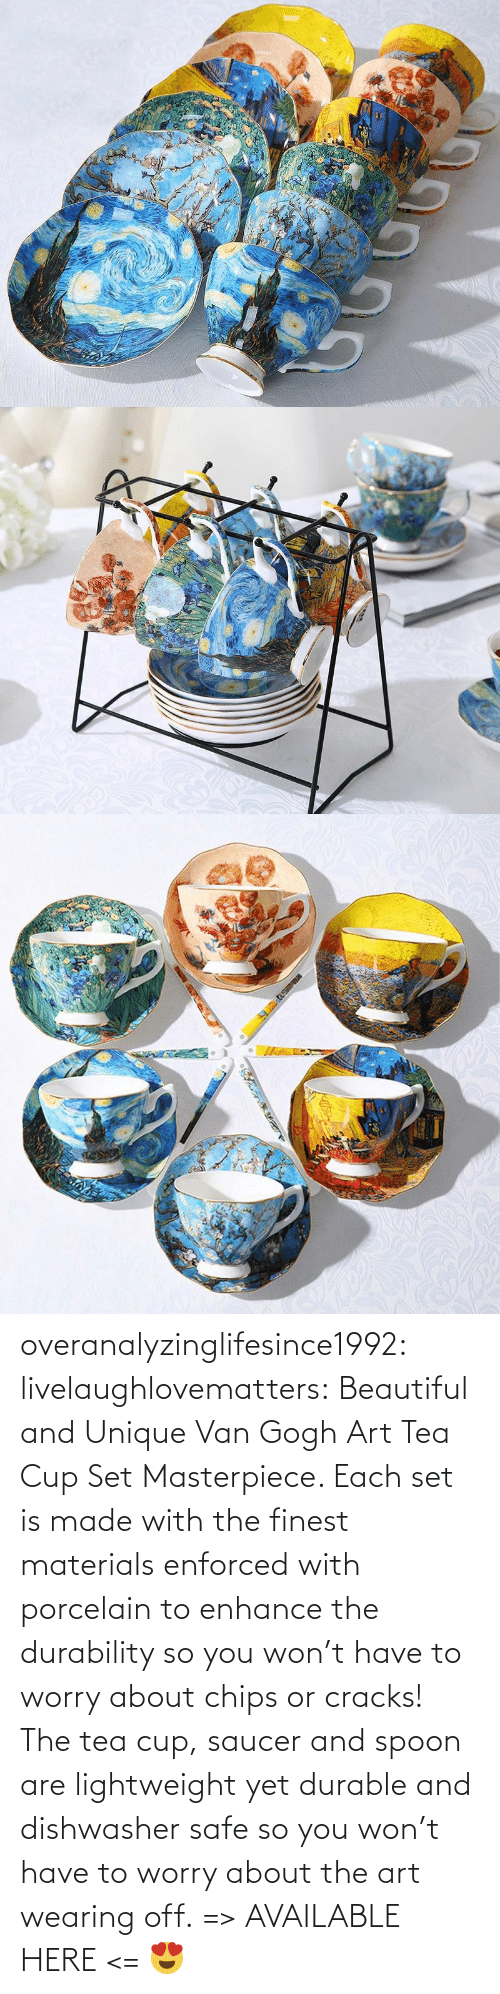 worry: overanalyzinglifesince1992: livelaughlovematters:  Beautiful and Unique Van Gogh Art Tea Cup Set Masterpiece. Each set is made with the finest materials enforced with porcelain to enhance the durability so you won't have to worry about chips or cracks! The tea cup, saucer and spoon are lightweight yet durable and dishwasher safe so you won't have to worry about the art wearing off. => AVAILABLE HERE <=    😍